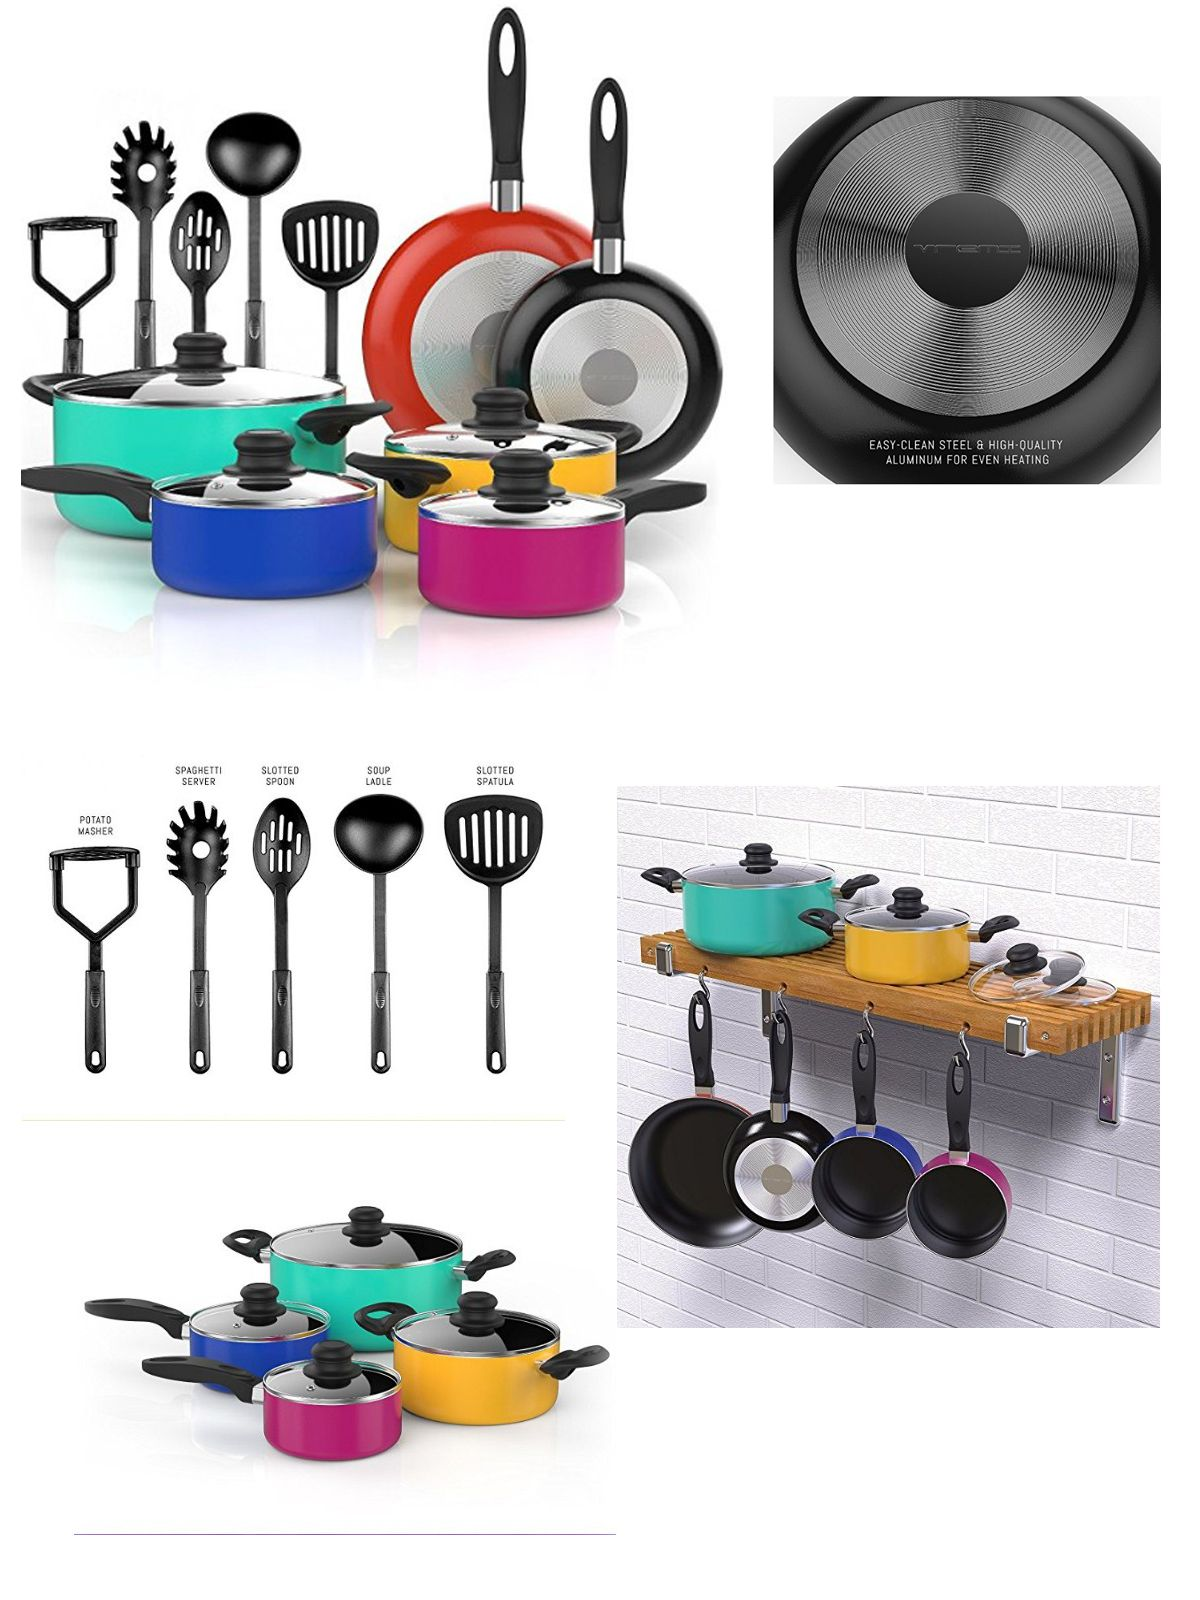 vremi 15 piece nonstick cookware set colored kitchen pots and pans rh pinterest com